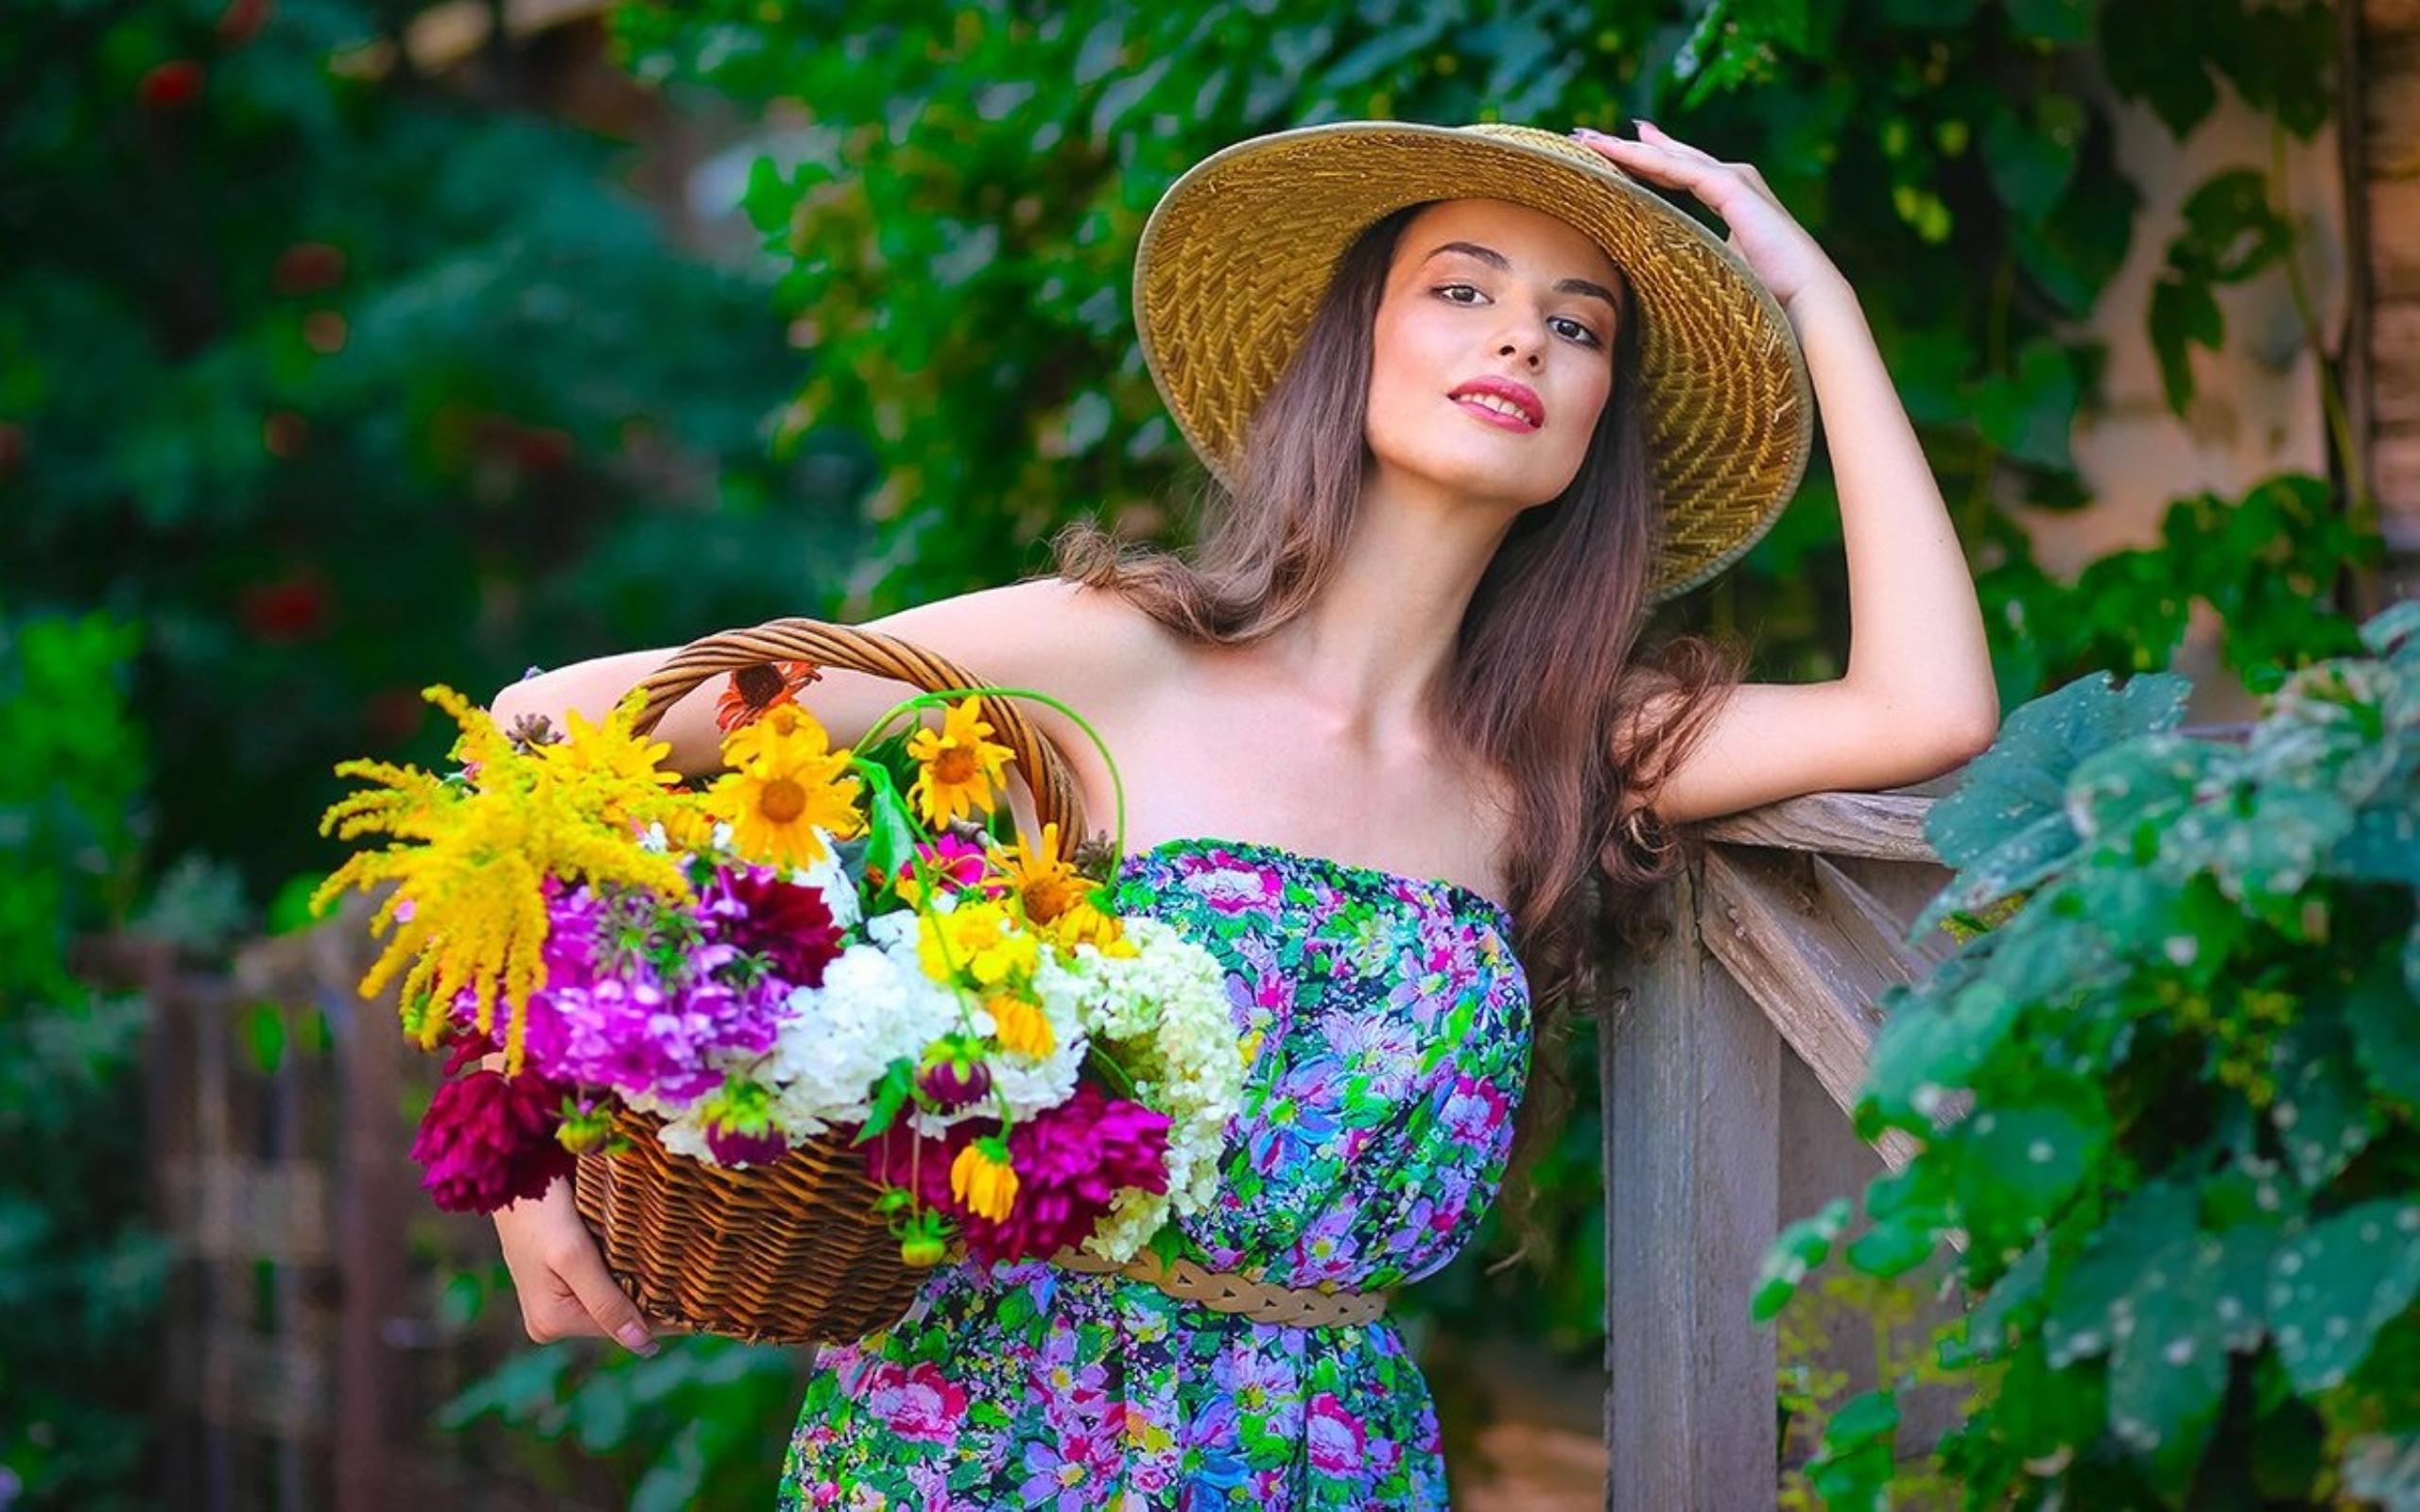 Beautiful Smile Wallpaper 68 Images: What Flowers Are Better To Give As A Gift To A Young Girl